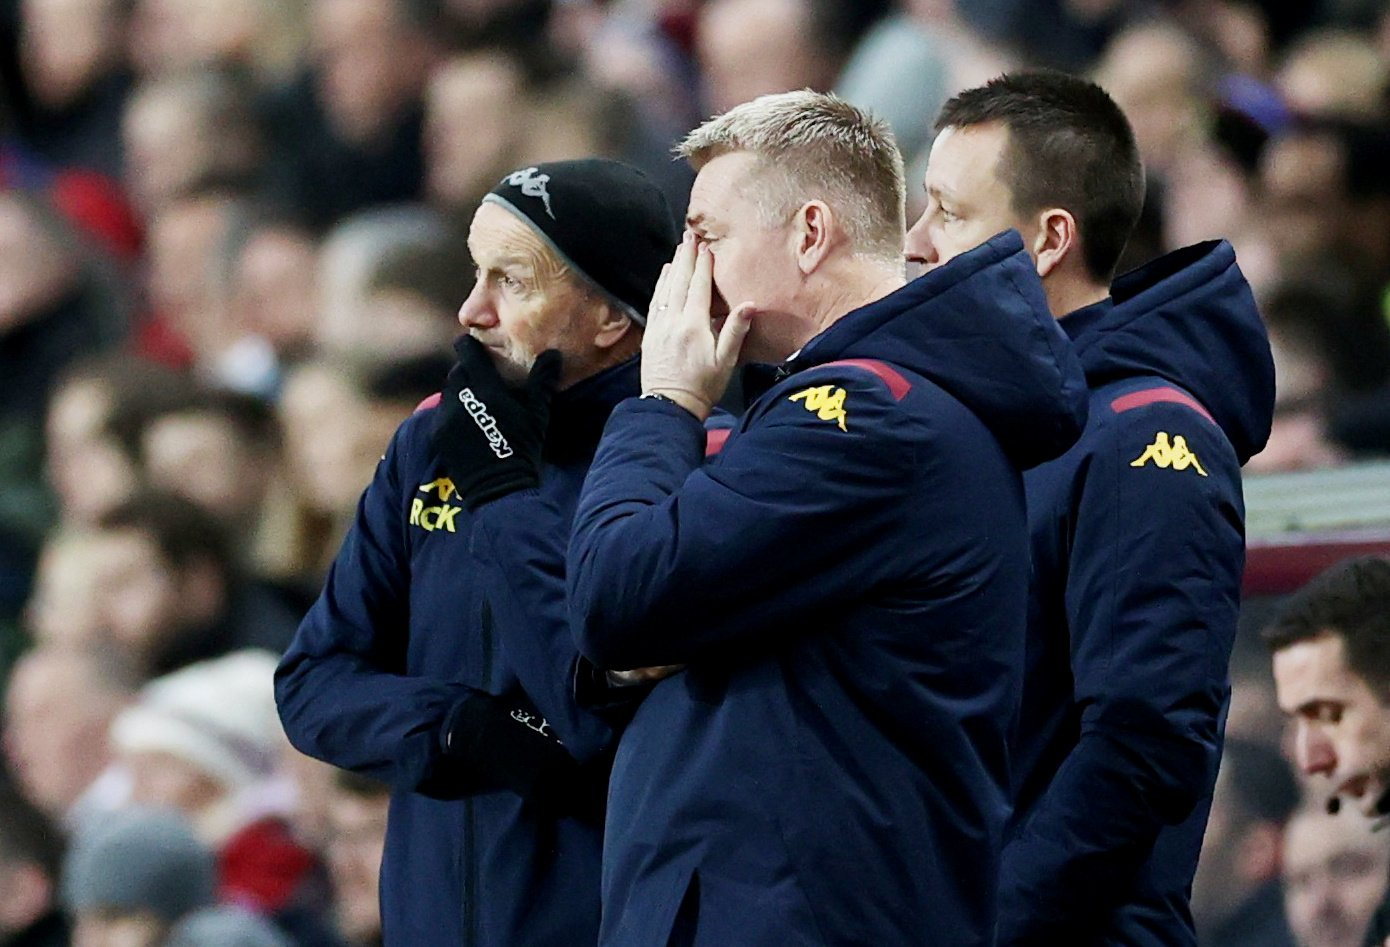 Aston Villa: Some fans want Dean Smith to leave before it's too late